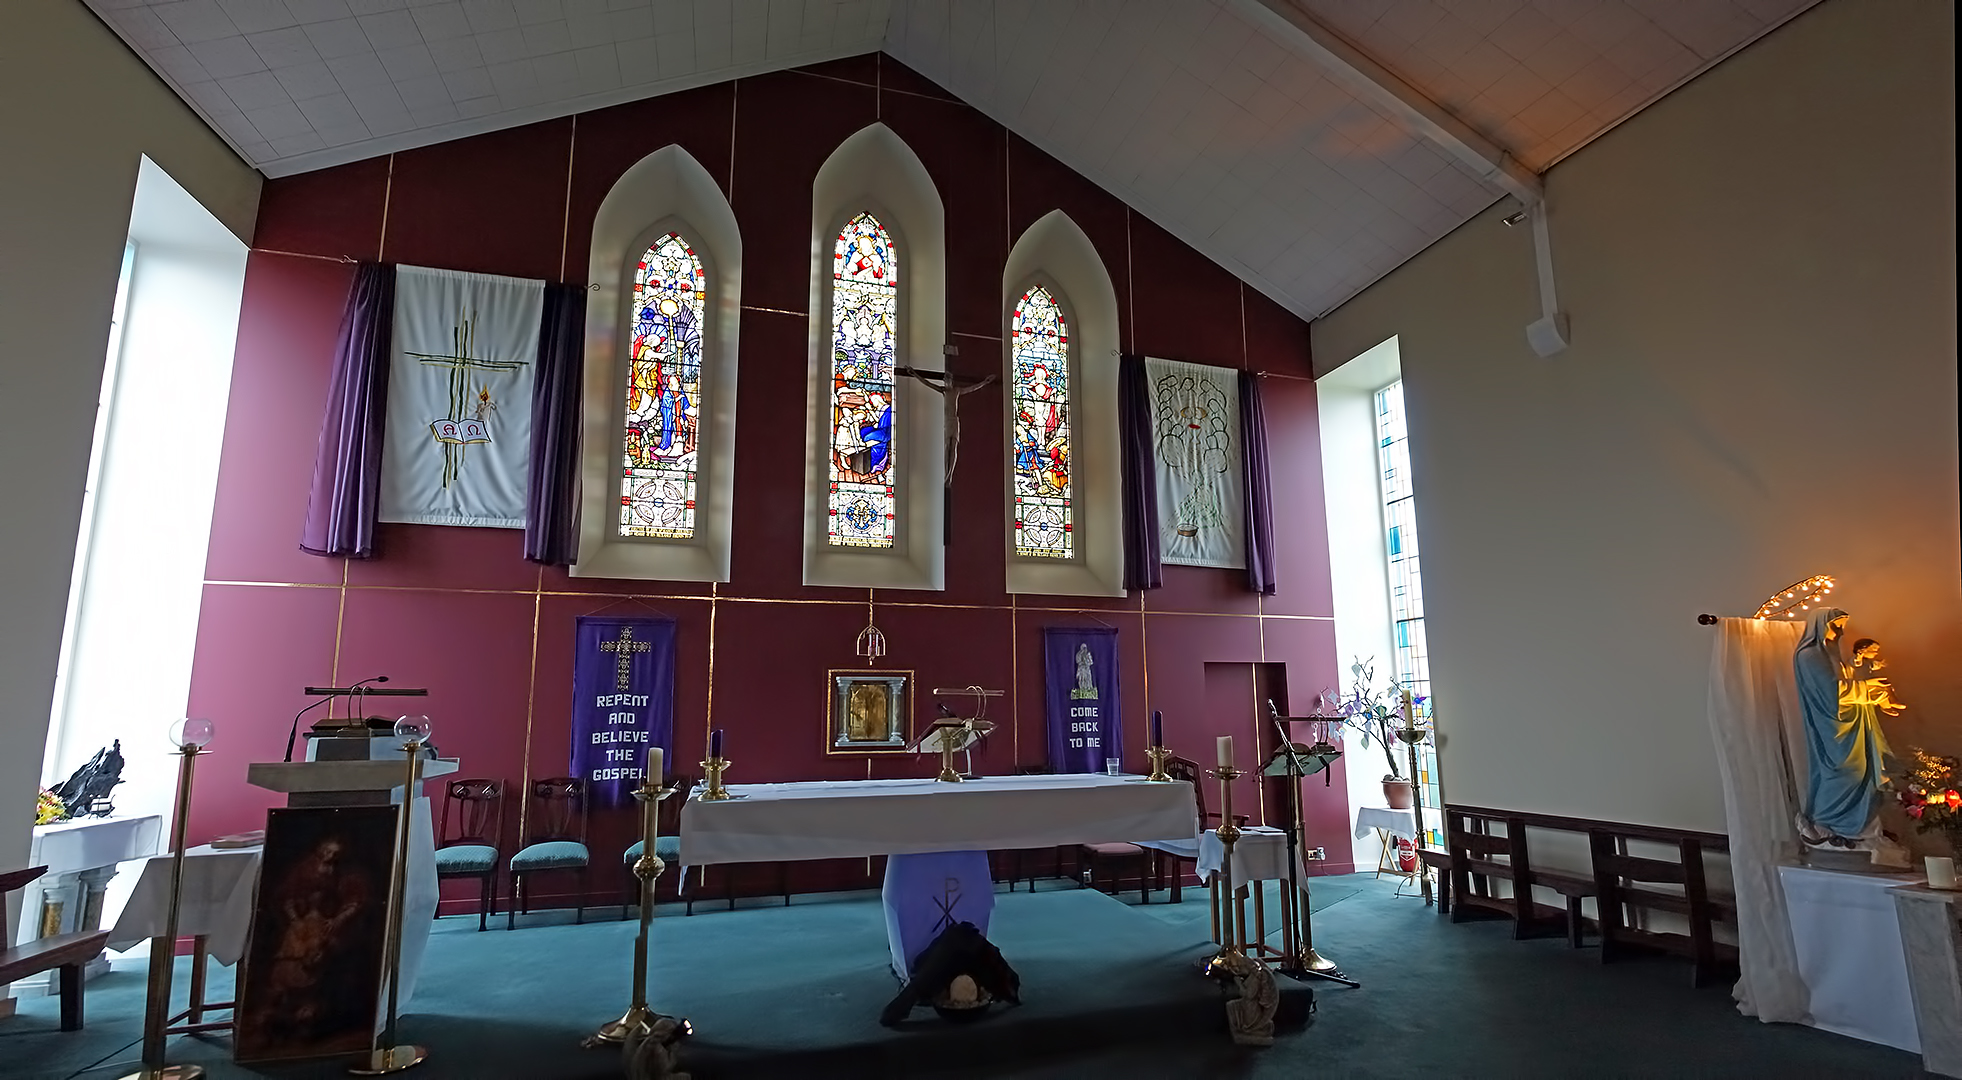 Lady Of The Wayside >> St Brigid's Church, Drum – Parish of Ss. Peter & Paul